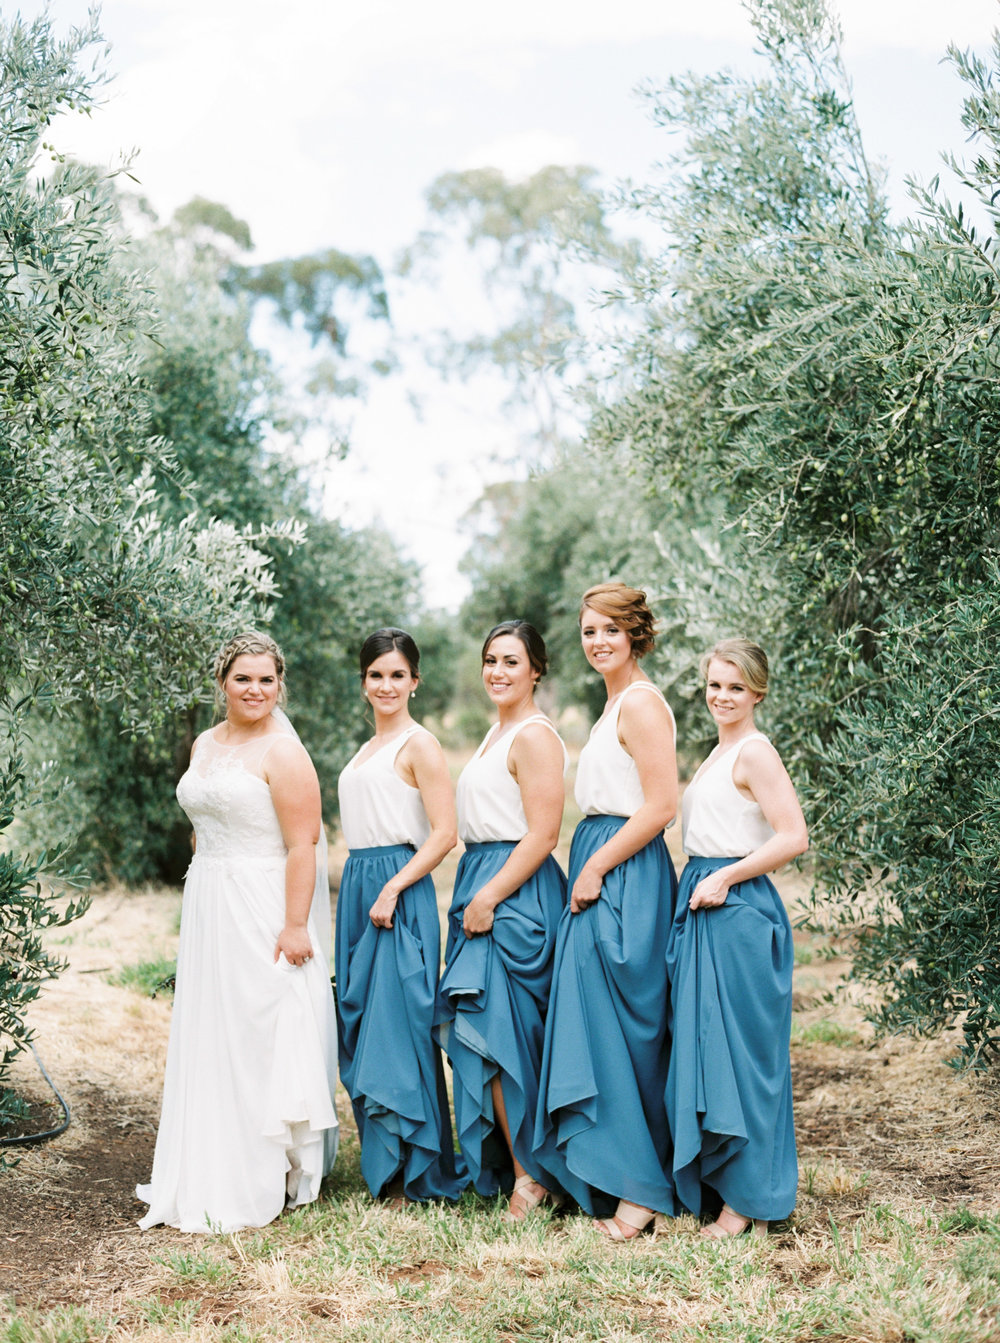 00040- Fine Art Film NSW Mudgee Wedding Photographer Sheri McMahon.jpg